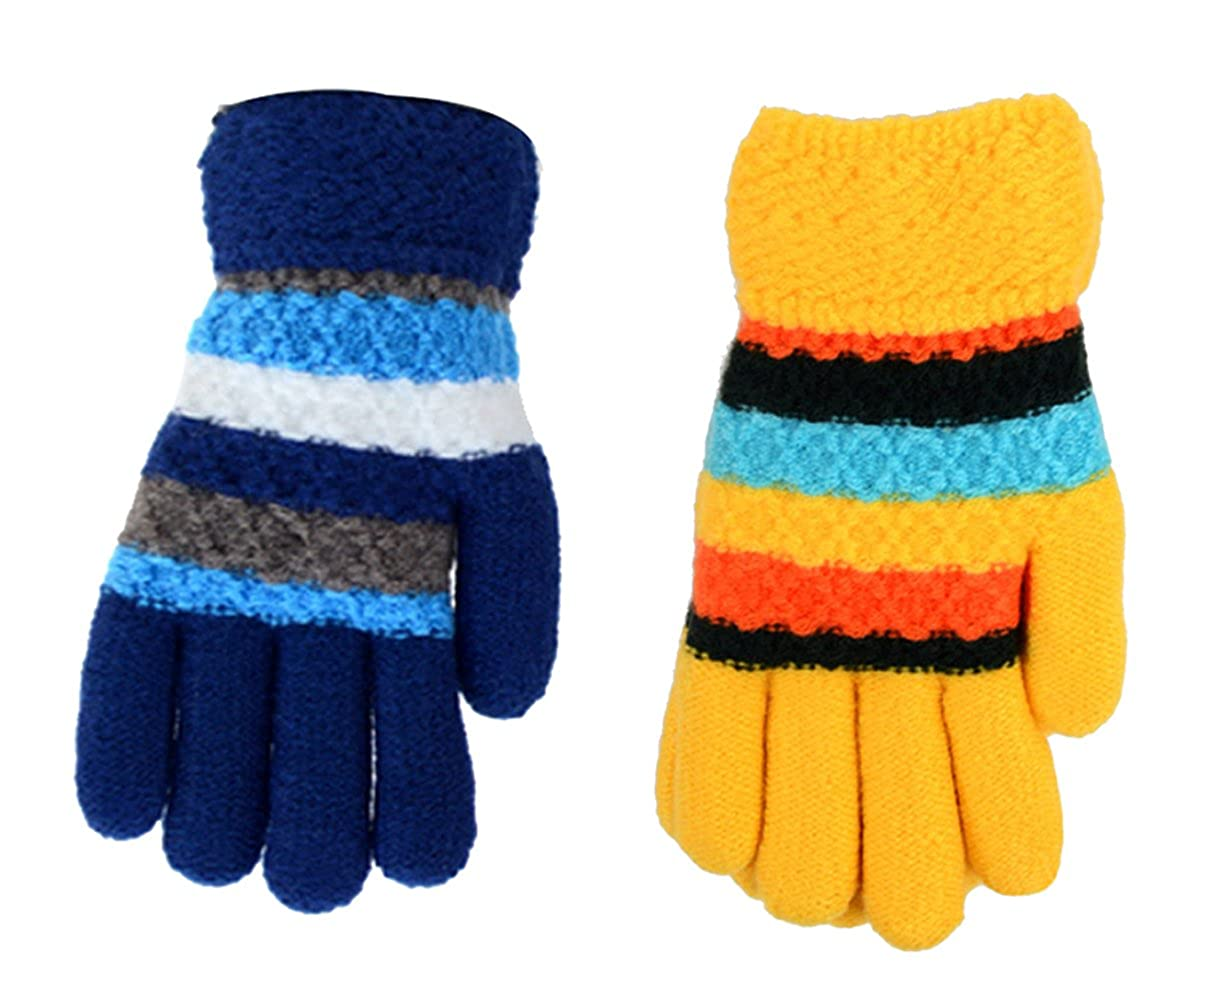 Set of 2 Children's Knit Winter Gloves with Fuzzy Fleece Lining~Cute Multi-color Stripes~Size for 8-12 Year Old Boys & Girls